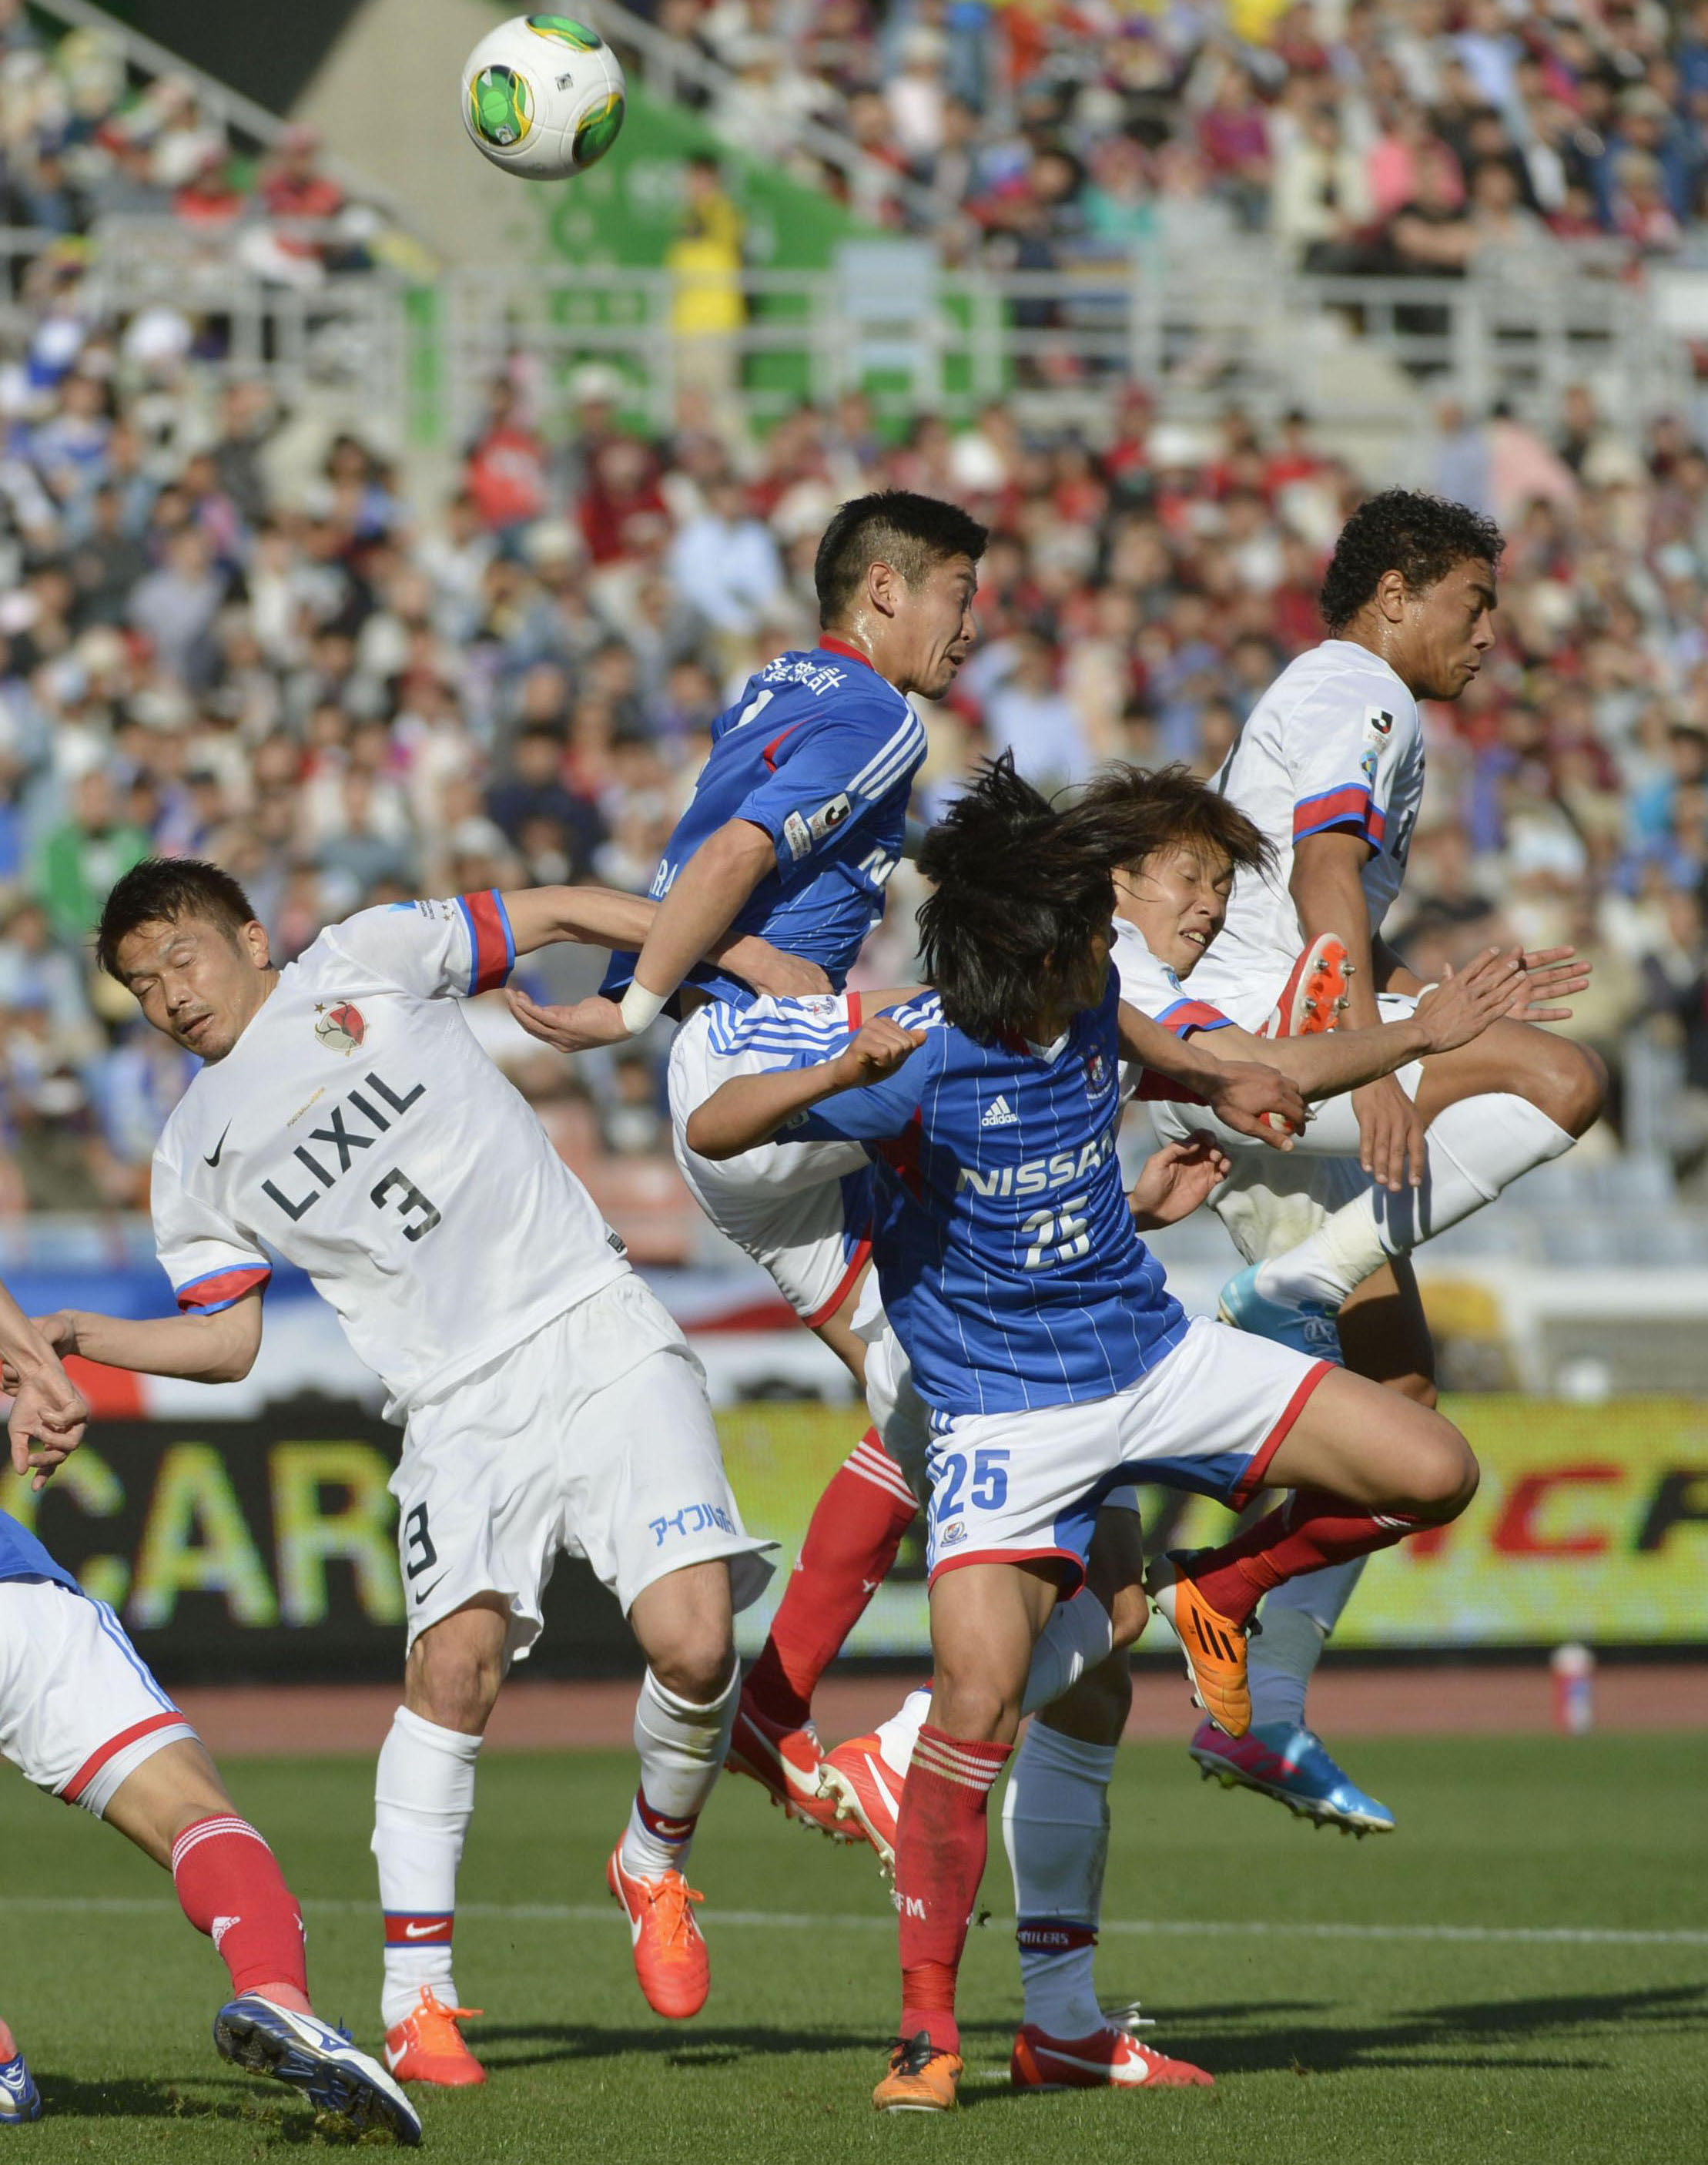 sj20130504a1a Just get rid of it! Kashima Antlers play headers in the box, concede 95th min equaliser v Yokohama